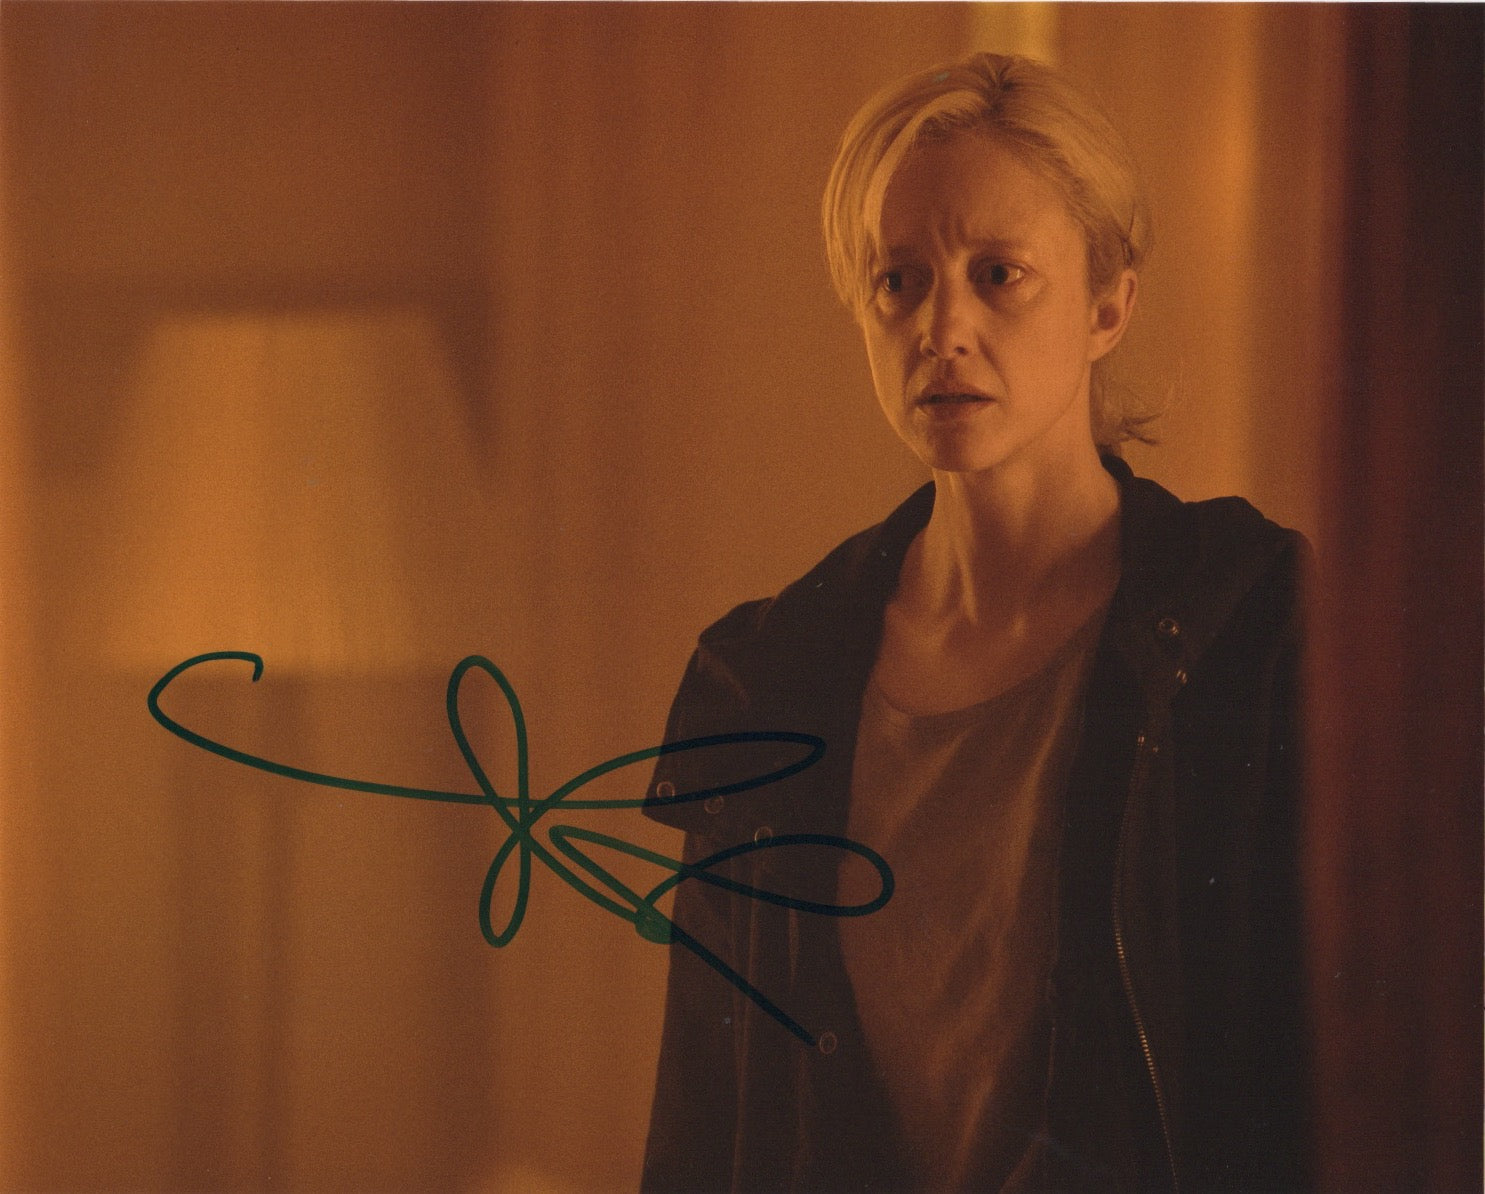 Andrea Riseborough Autograph Signed 8x10 Photo #3 - Outlaw Hobbies Authentic Autographs